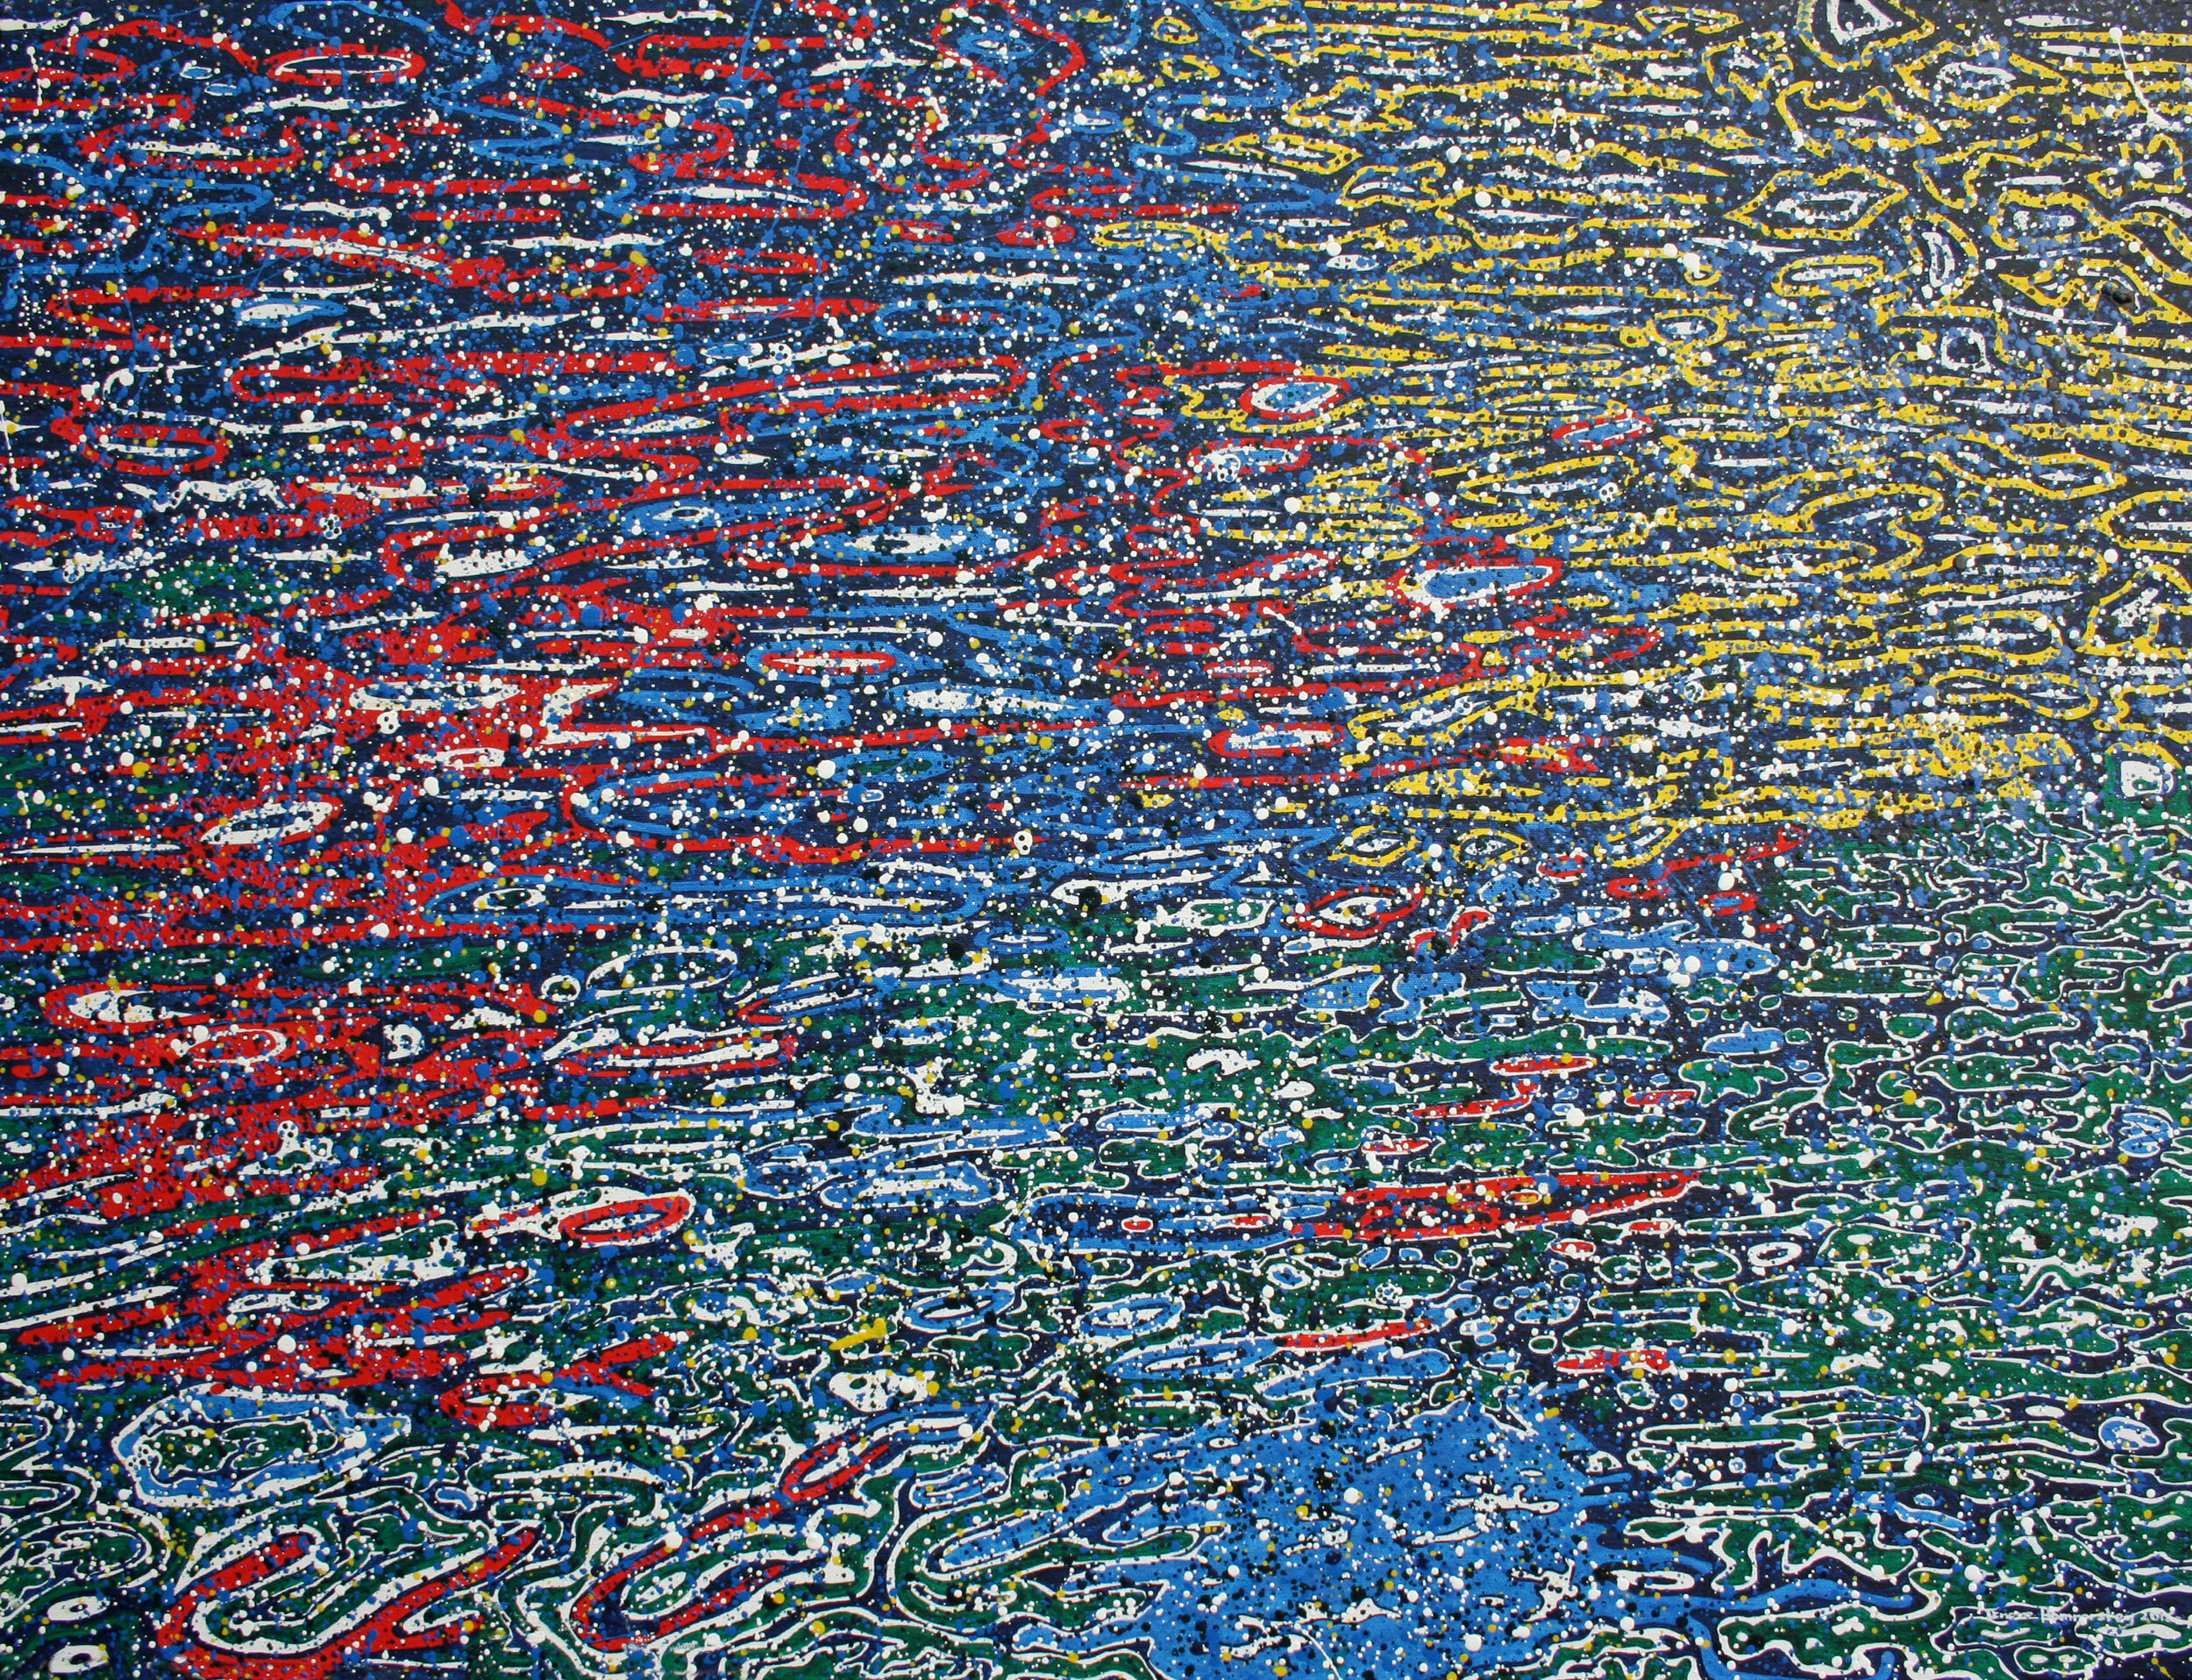 Water-based pointillistic abstraction painting with fragmented shapes and lines. red, blue, yellow, green areas